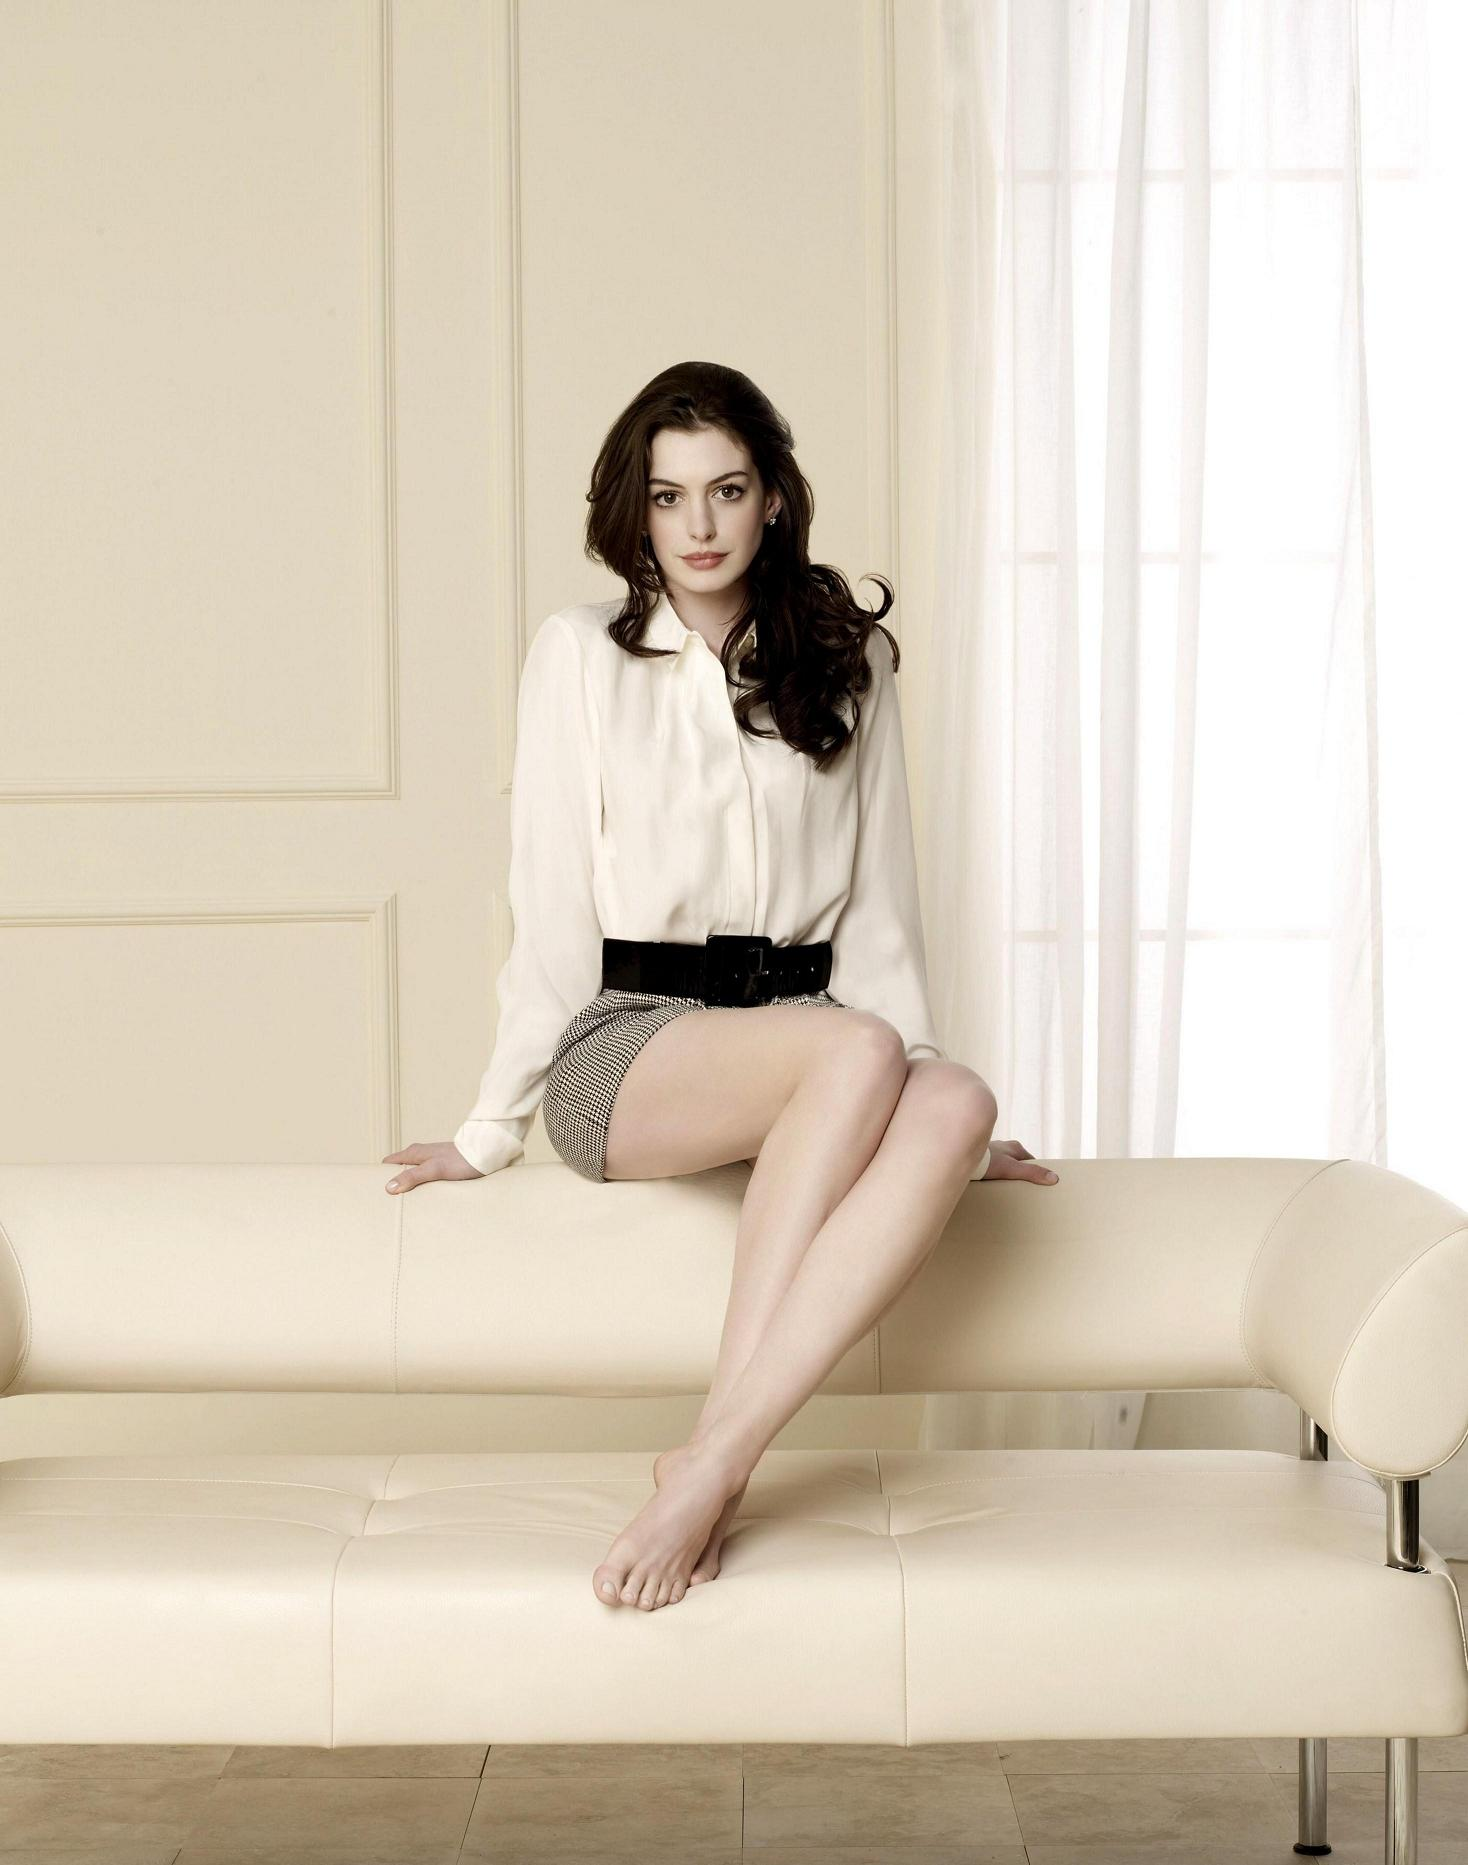 Anne Hathaway photo #188253